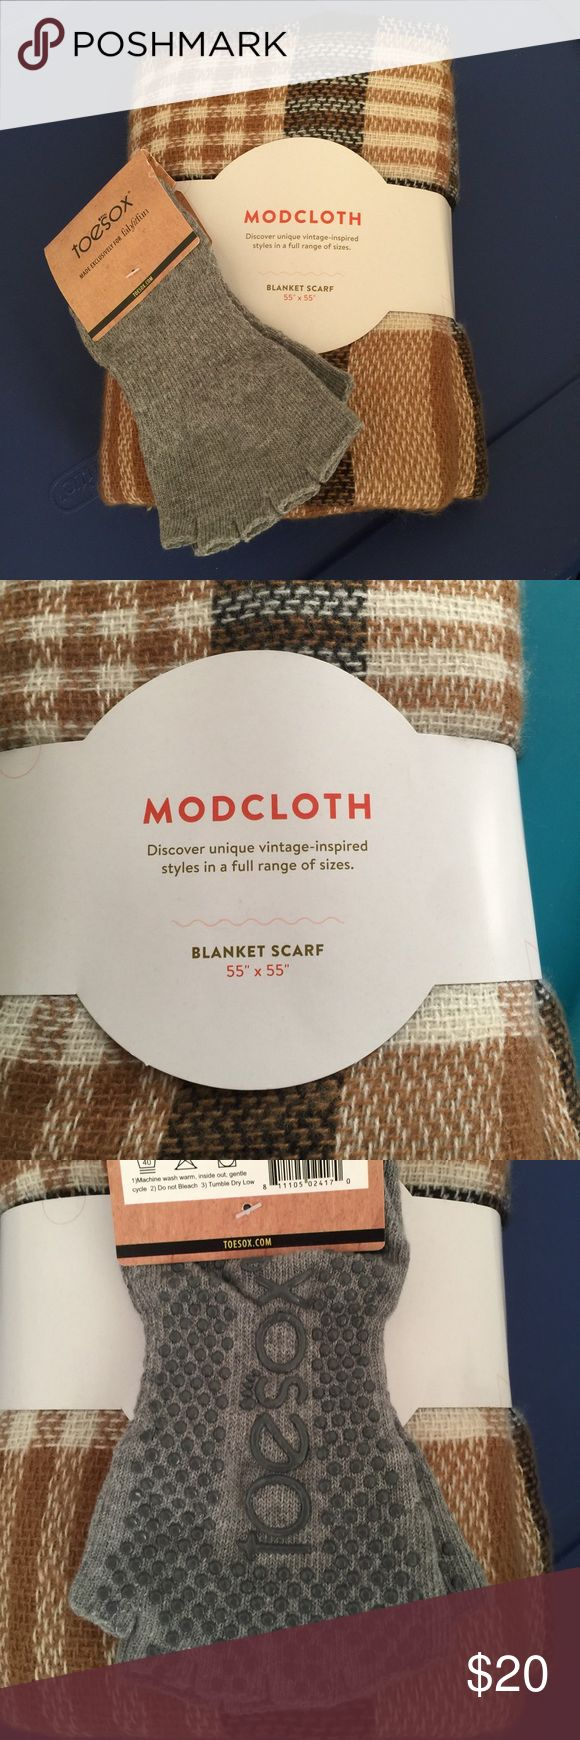 ModCloth scarf and toesox Never opened! From the fabfitfun fall box. ModCloth blanket scarf. As well as, half toe low rise sizes 5-10. ModCloth Accessories